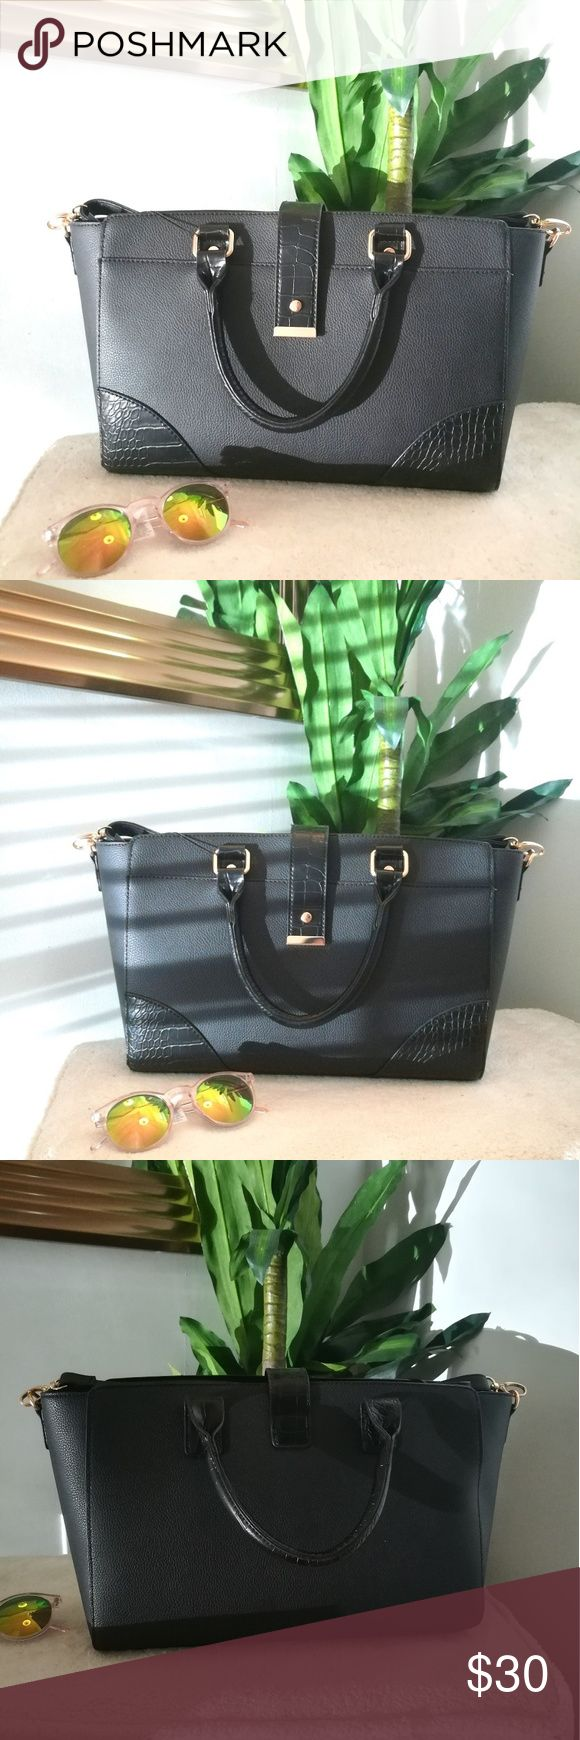 """PRIMARK FAUX LEATHER TOTE NEW WITH TAG! Pebbled faux leather with gold hardware. Crossbody strap included. 17""""wide x 3.5""""depth x 9.5""""high. One zippered pocket inside. Please feel free to ask questions! Make an offer! Atmosphere Bags"""